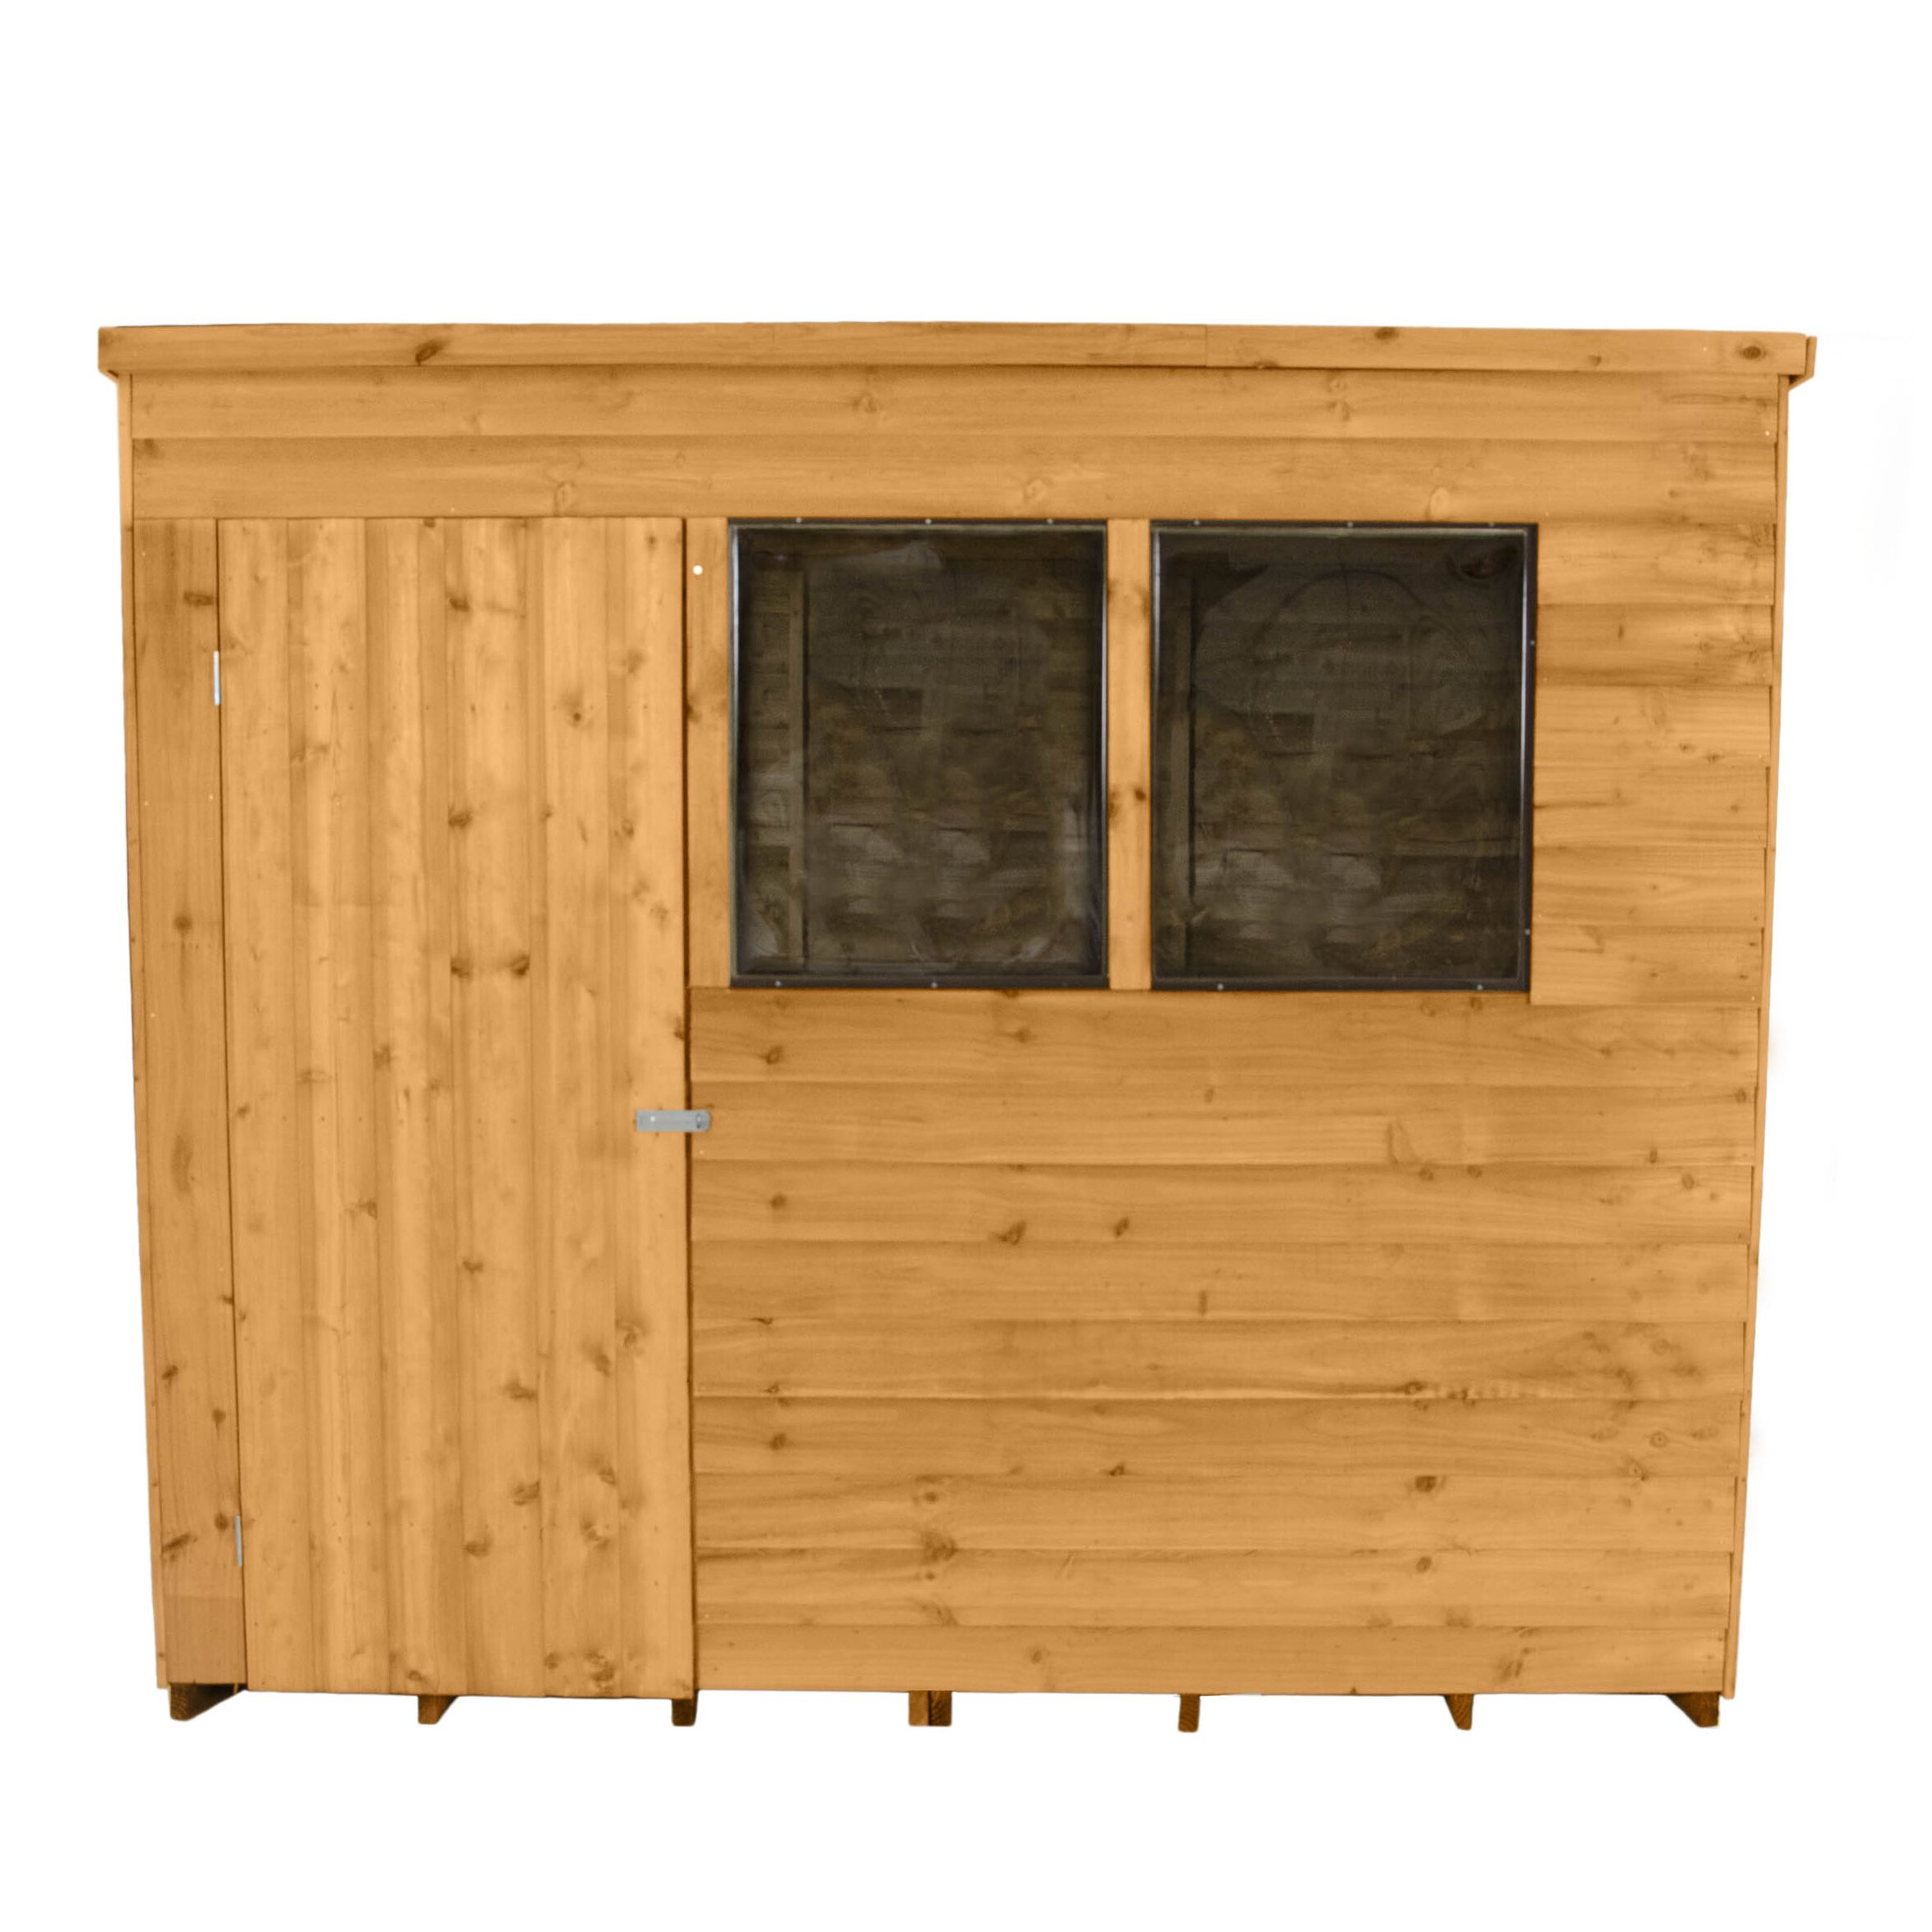 Gorgeous Forest Garden  X  Wooden Storage Shed  Reviews  Wayfaircouk With Extraordinary Forest Garden  X  Wooden Storage Shed With Divine Led Lights For Garden Also Charlies Garden In Addition Garden Of Bones Game Of Thrones And Garden Gates Leeds As Well As Designing Gardens Additionally Garden Centres Nottingham From Wayfaircouk With   Extraordinary Forest Garden  X  Wooden Storage Shed  Reviews  Wayfaircouk With Divine Forest Garden  X  Wooden Storage Shed And Gorgeous Led Lights For Garden Also Charlies Garden In Addition Garden Of Bones Game Of Thrones From Wayfaircouk